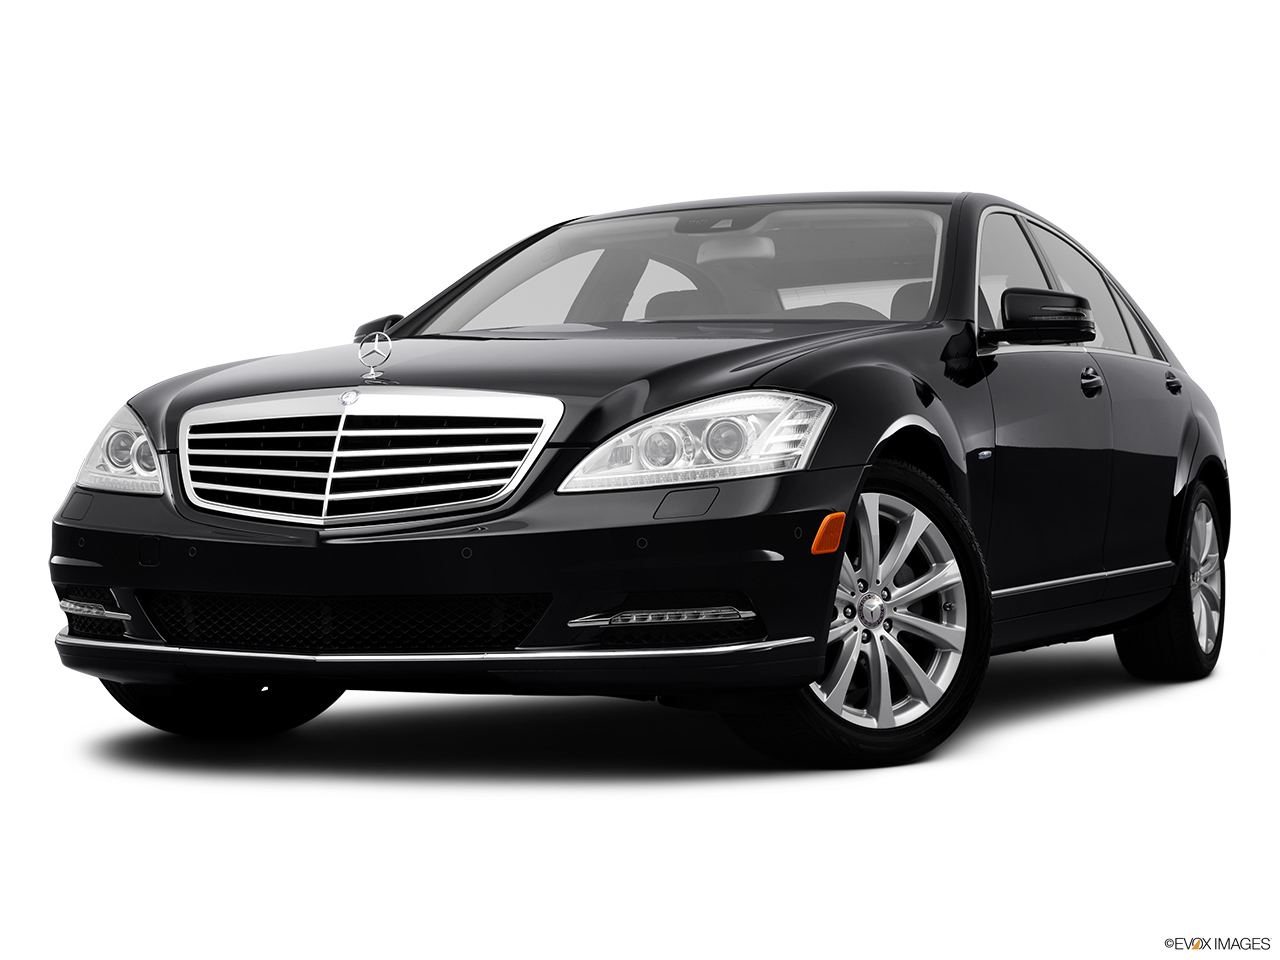 2012 Mercedes-Benz S-Class Hybrid S400 Front angle view, low wide perspective.